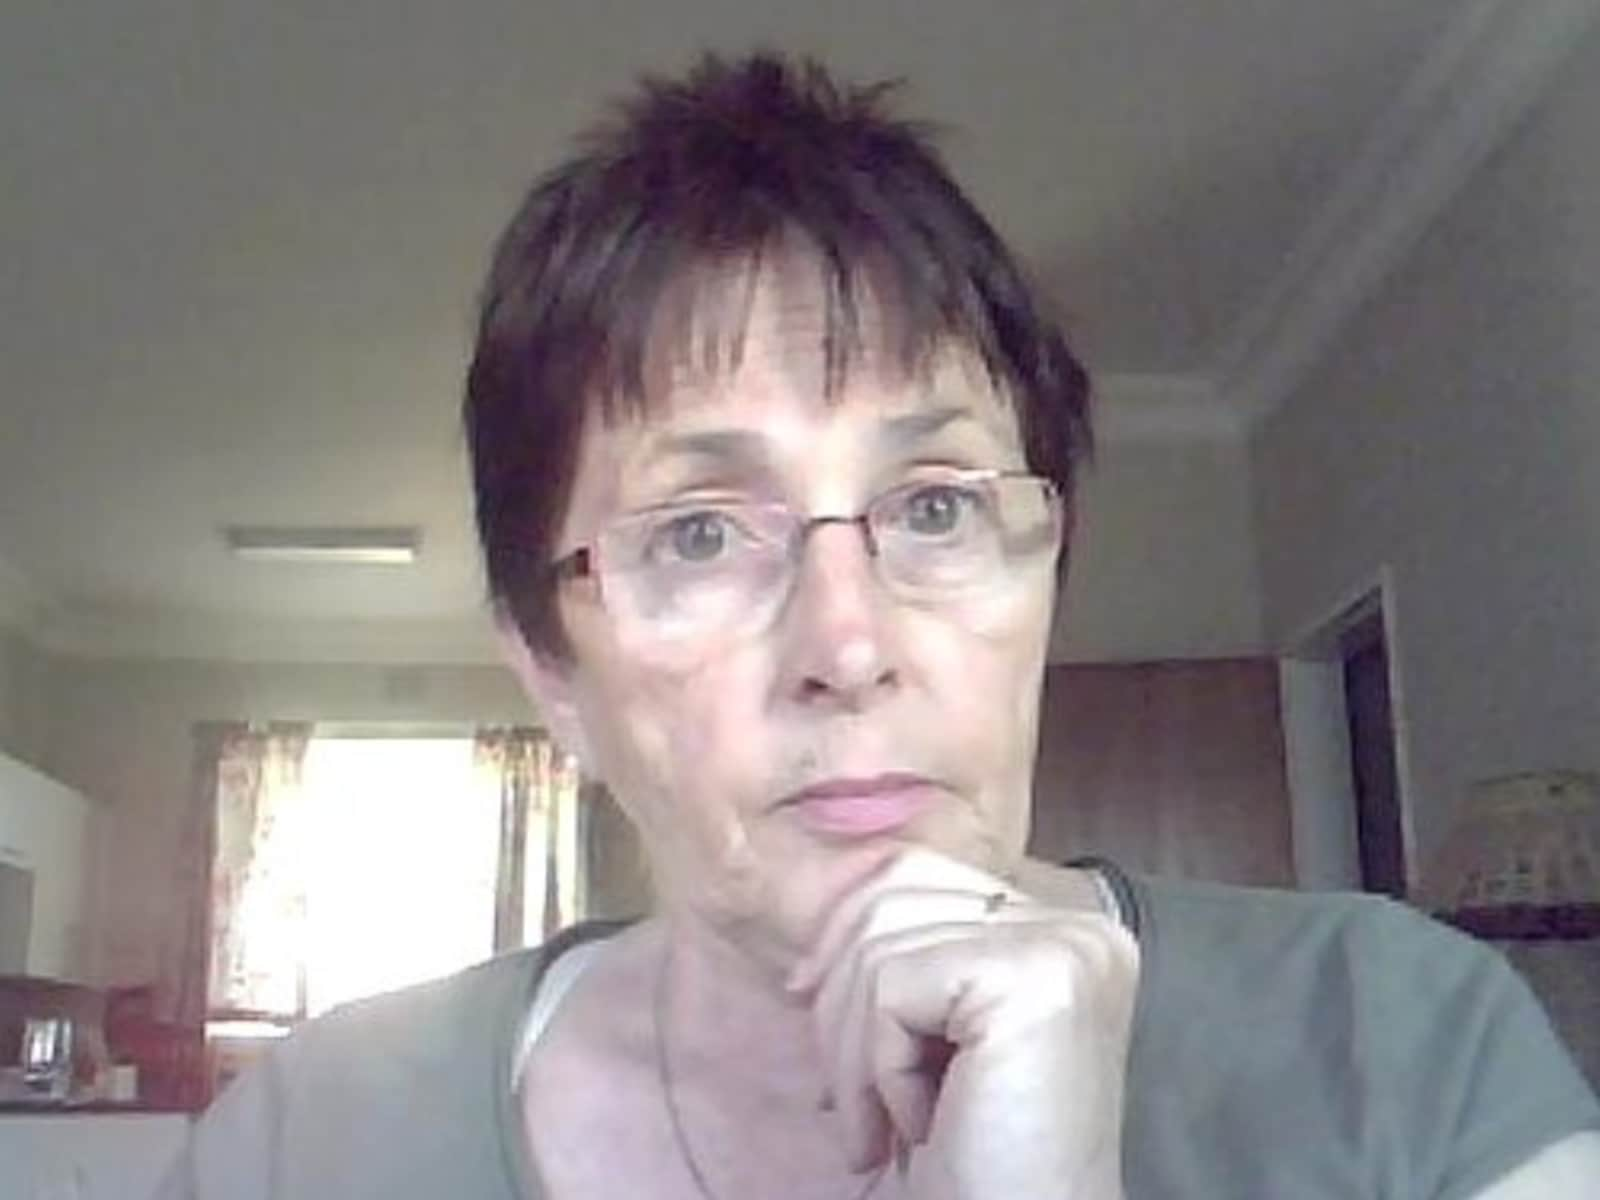 Patricia from Cape Town, South Africa